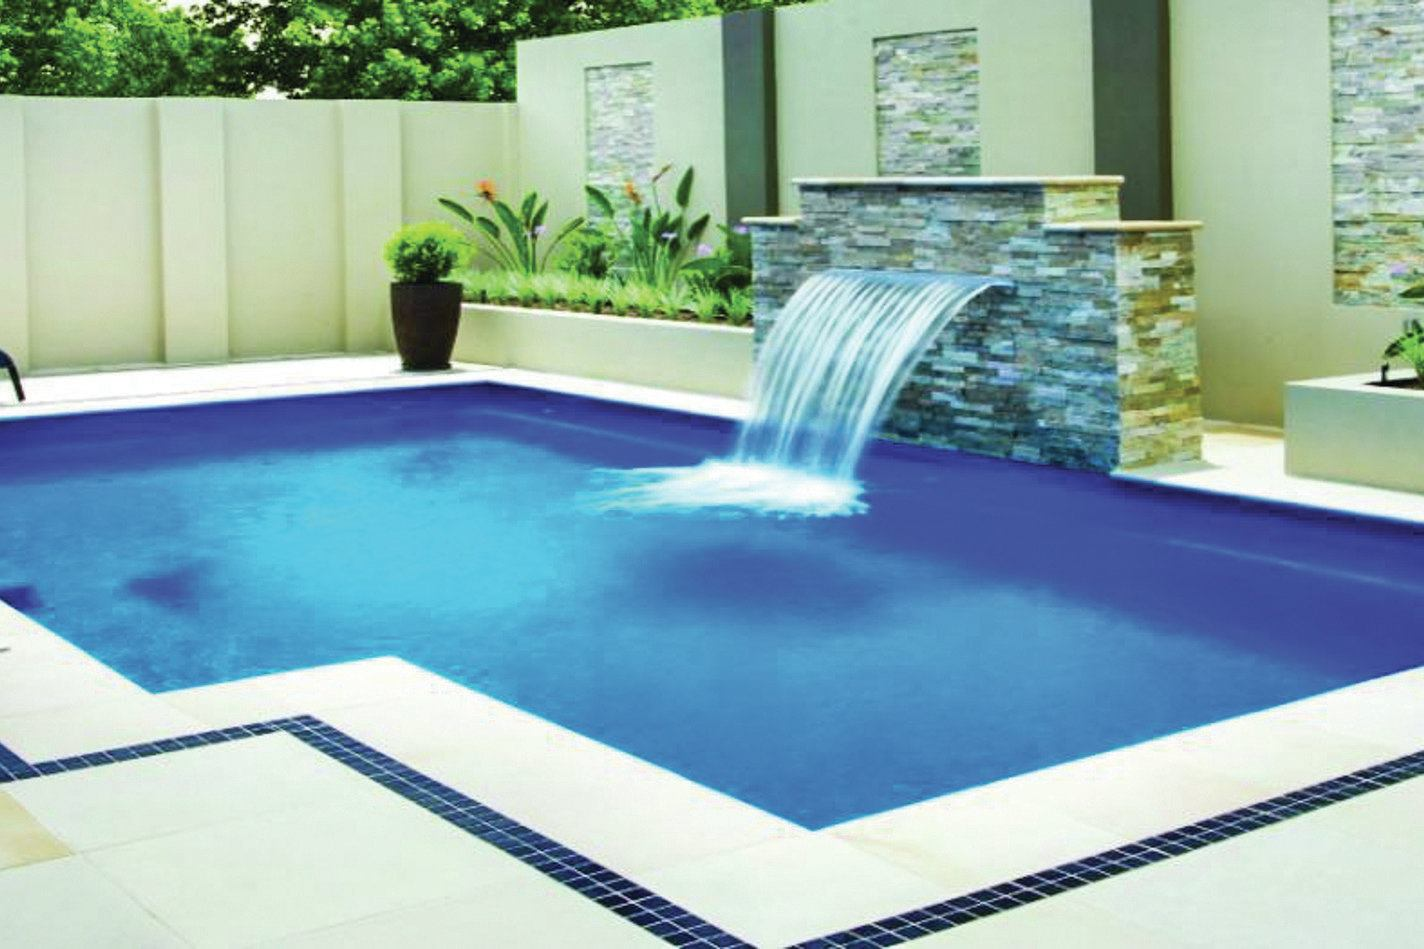 Fiberglass firm outgrows texas home pool spa news for Swimming pool manufacturers